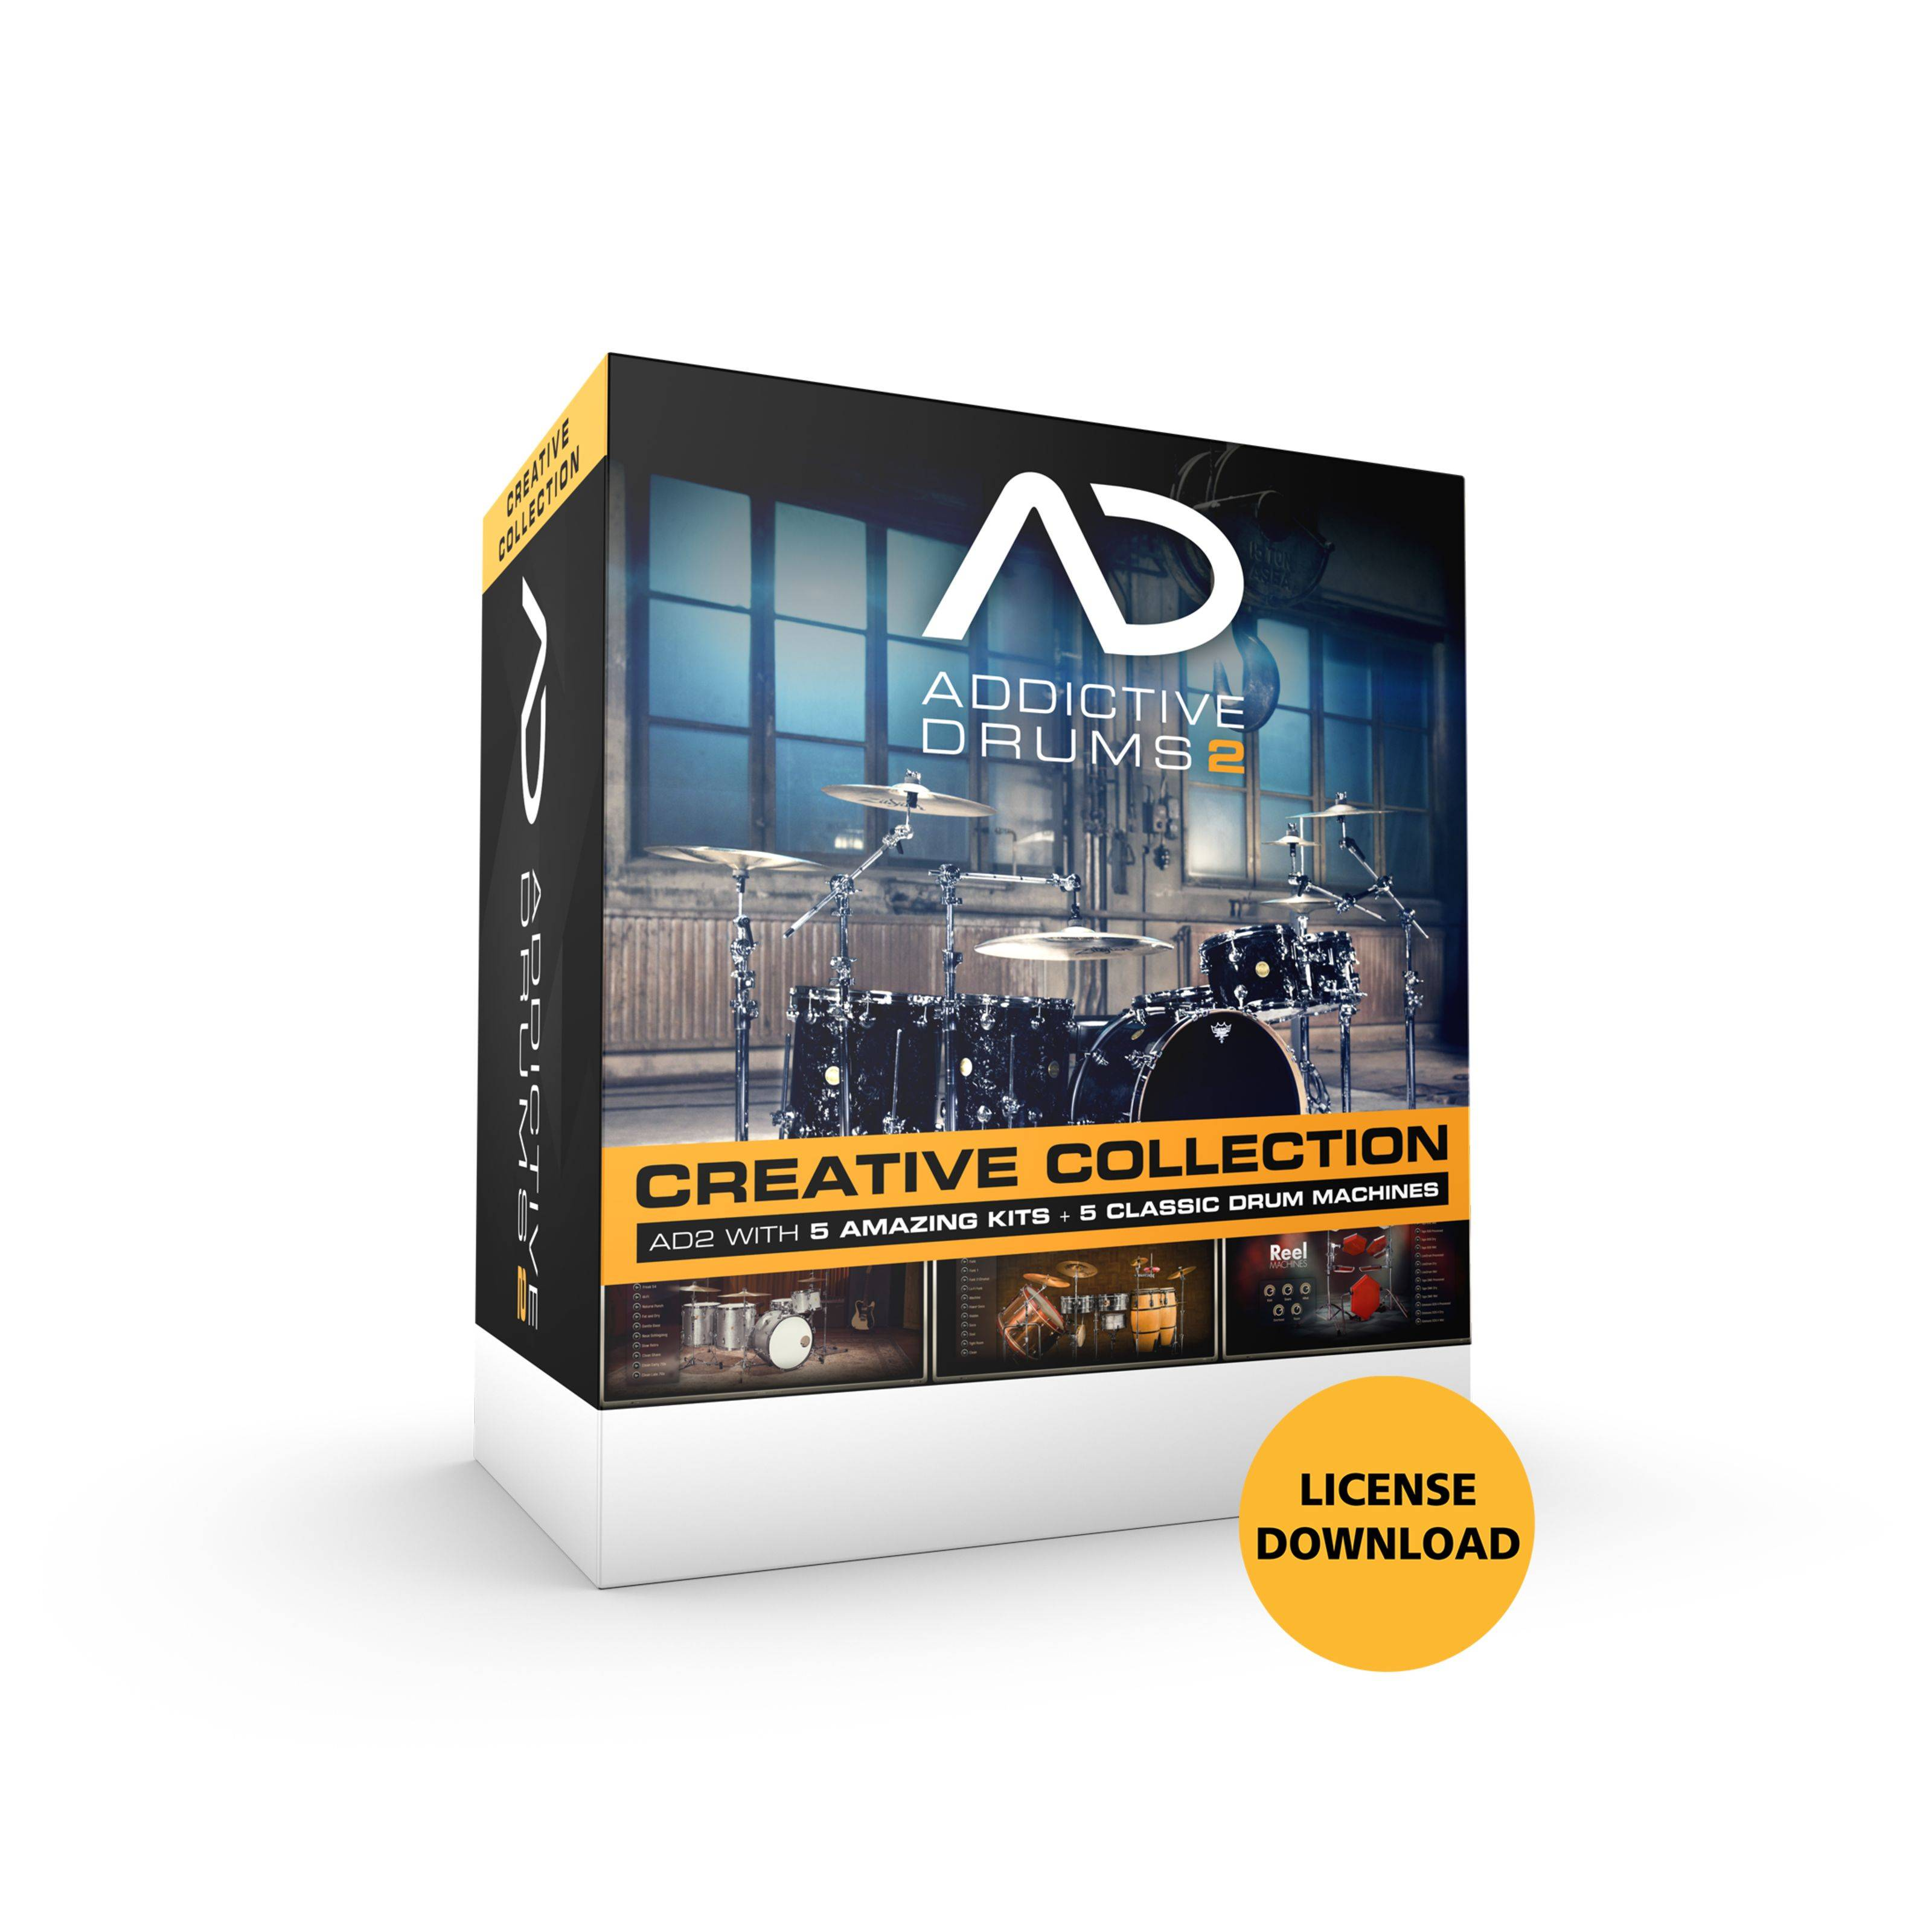 XLN Audio Addictive Drums 2 Bundle License Code